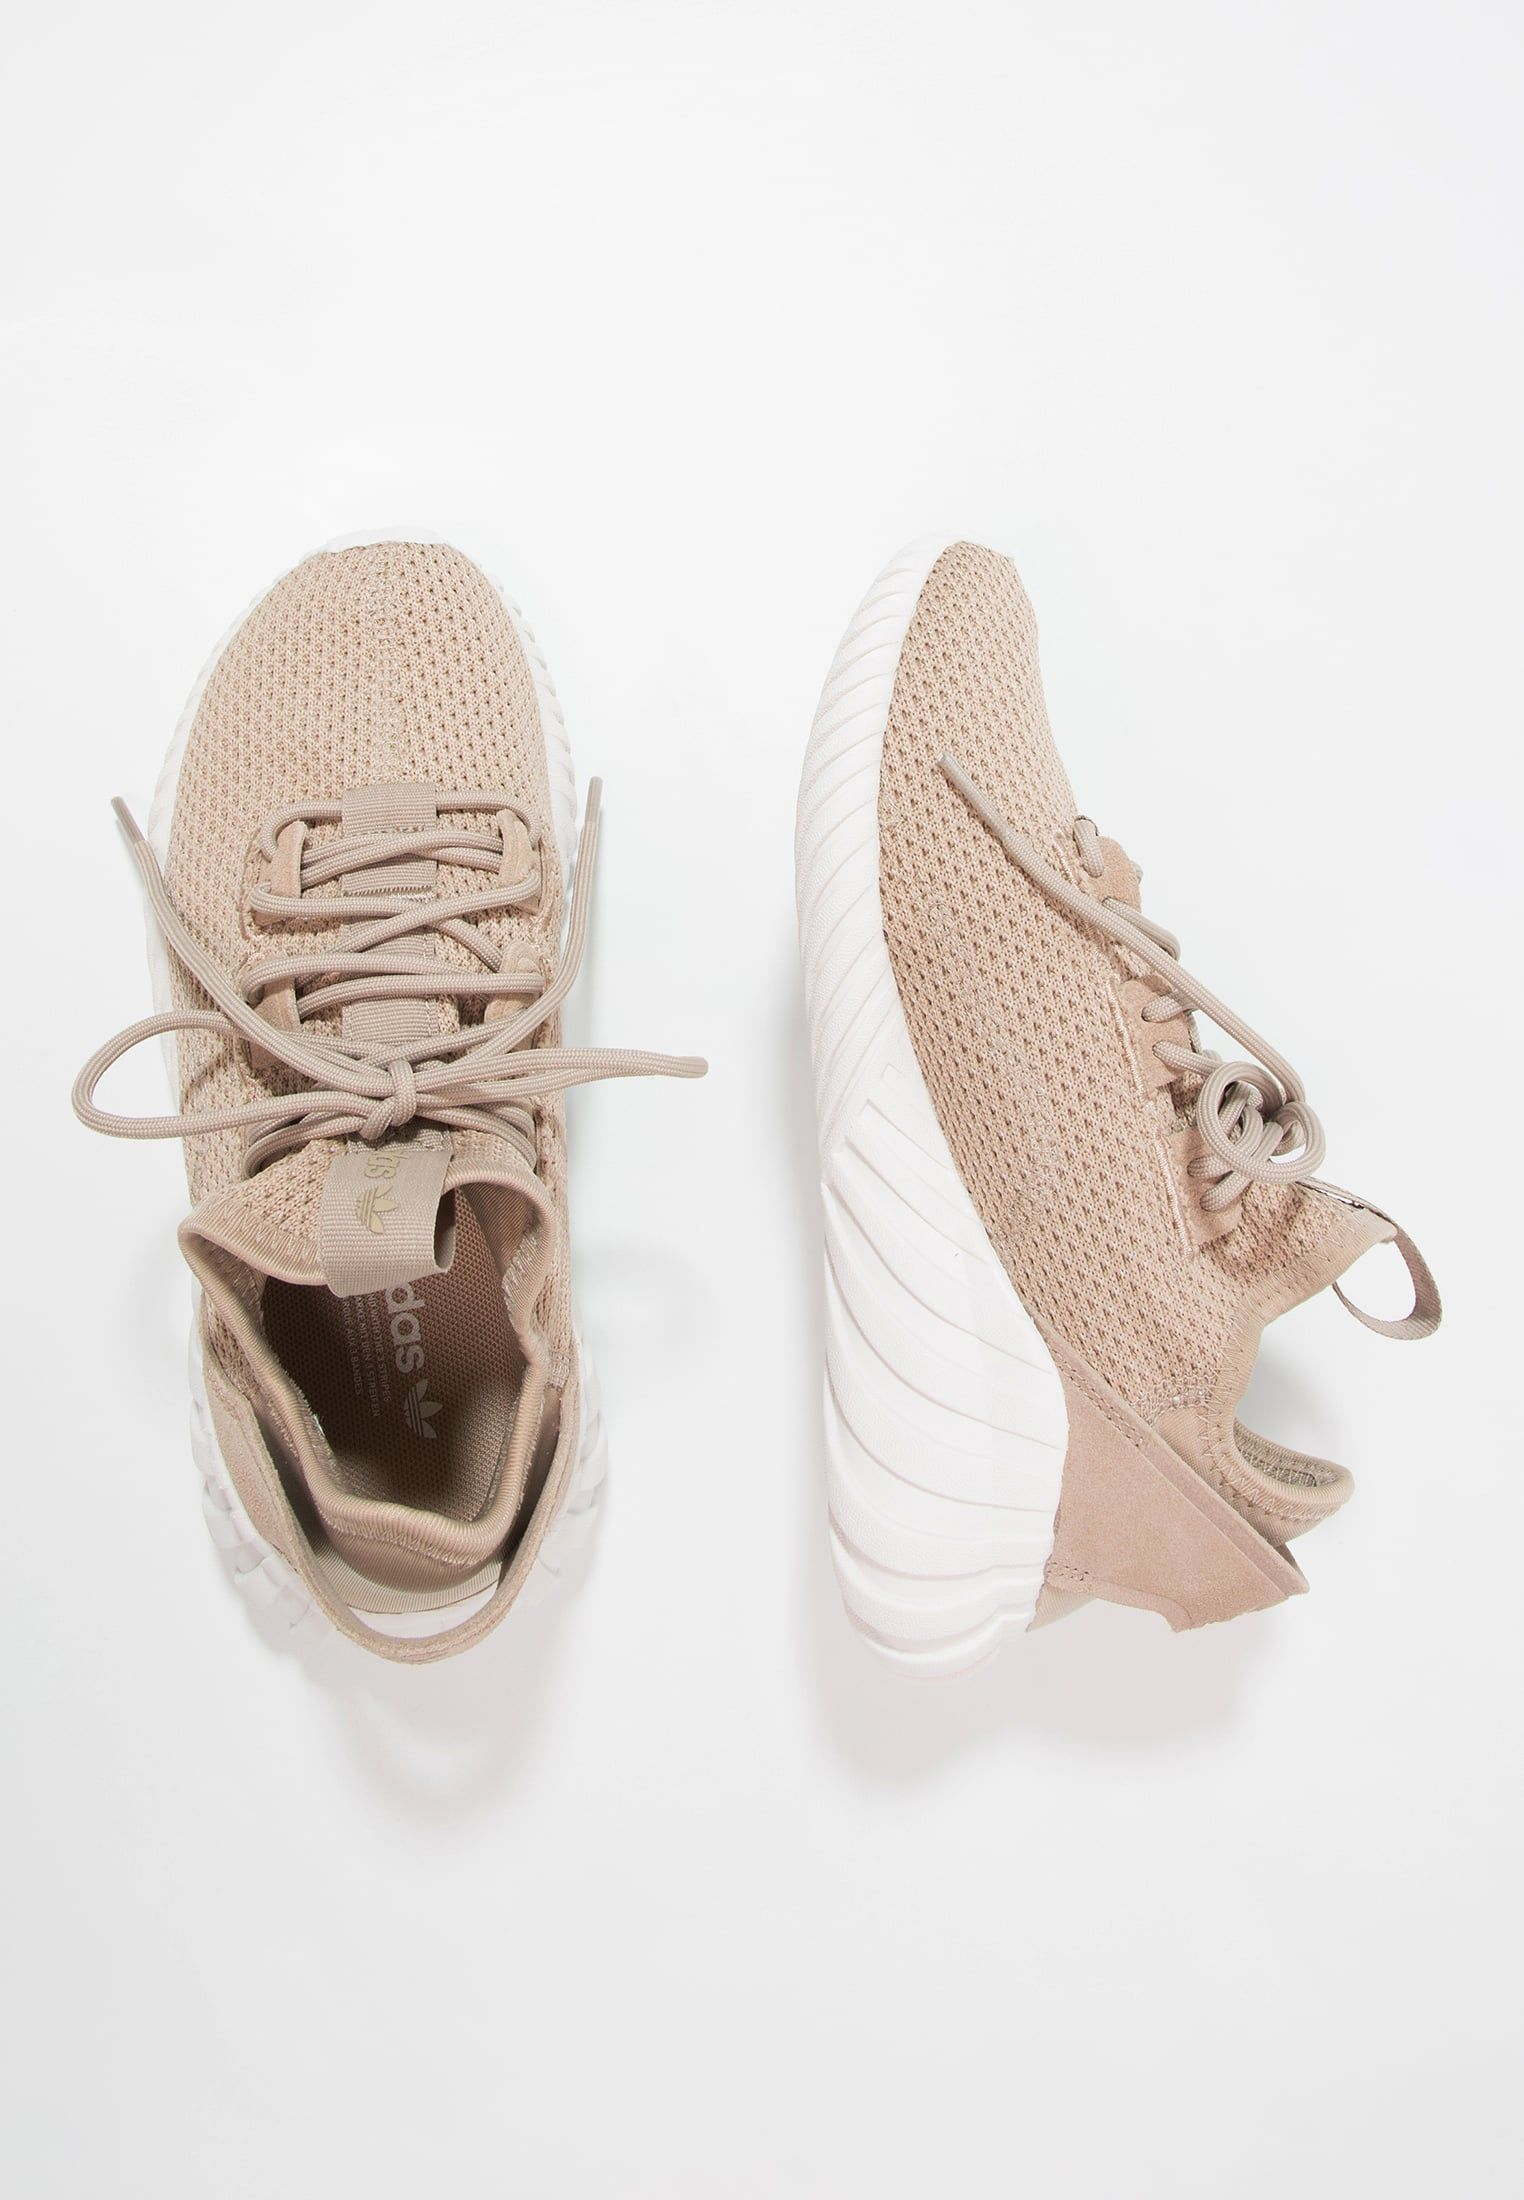 Adidas Originals Tubular köpa